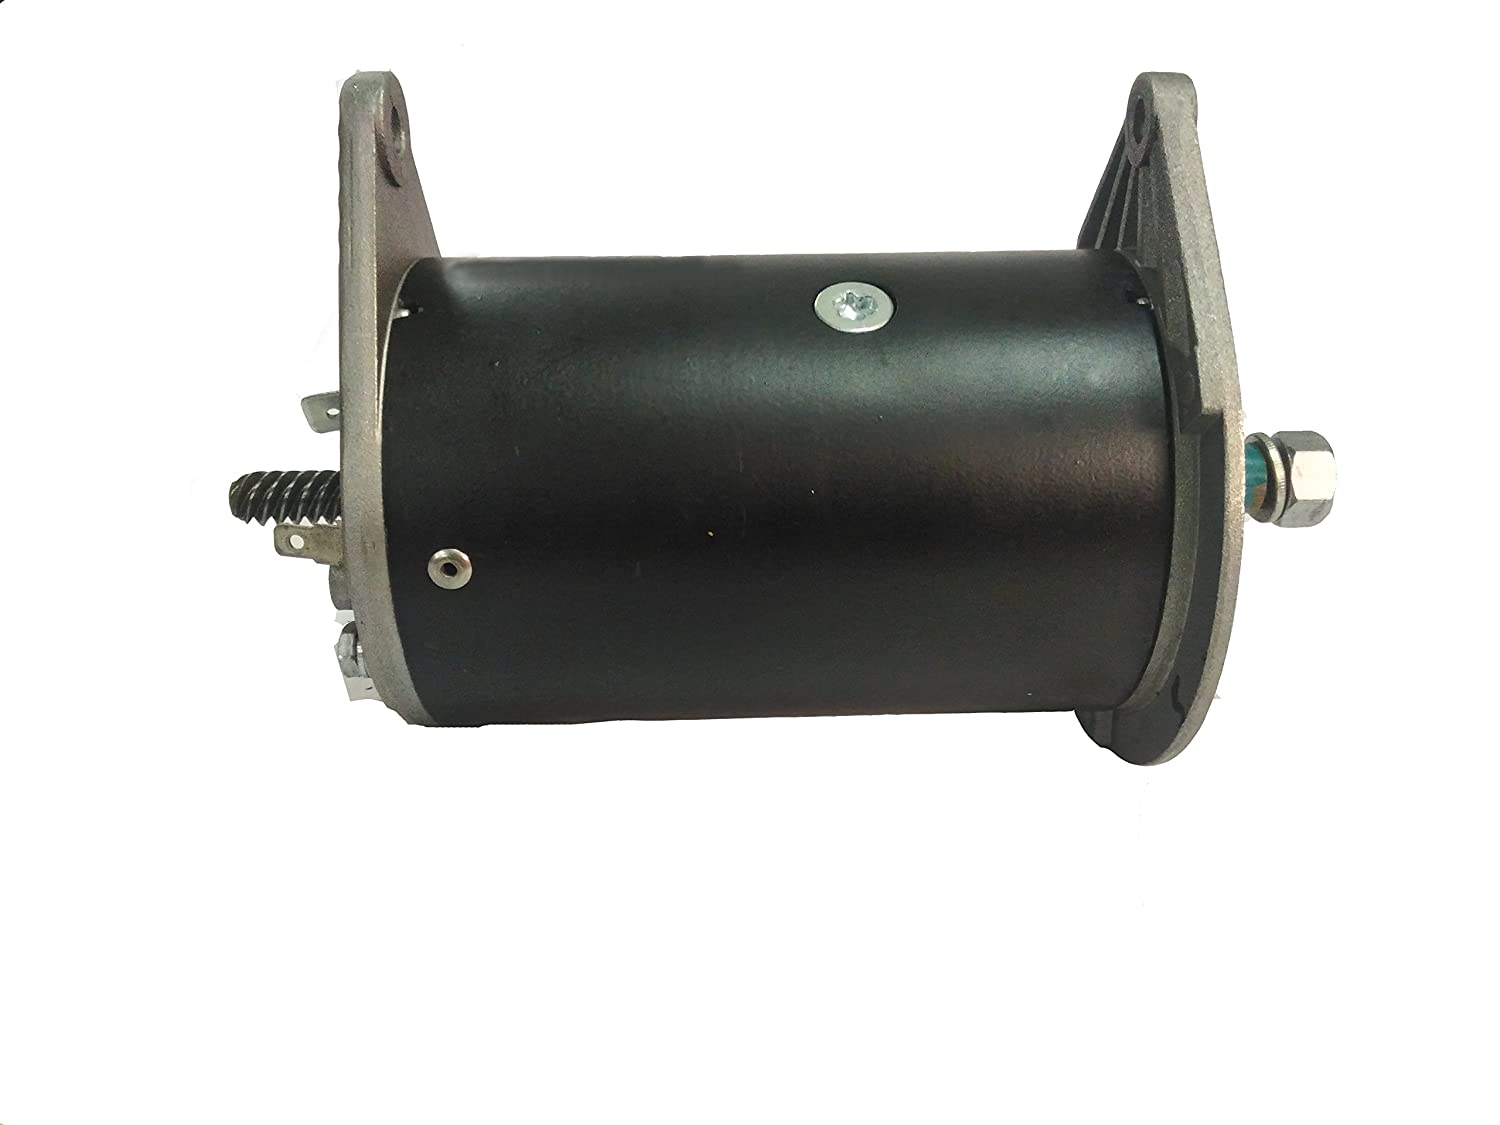 New Generator Fits Ford 2000 3000 4000 5000 7000 8000 1970 Tractor Wiring 9000 Holland International Case David Brown 15027 22756 22756a 22756b 22758 G4018